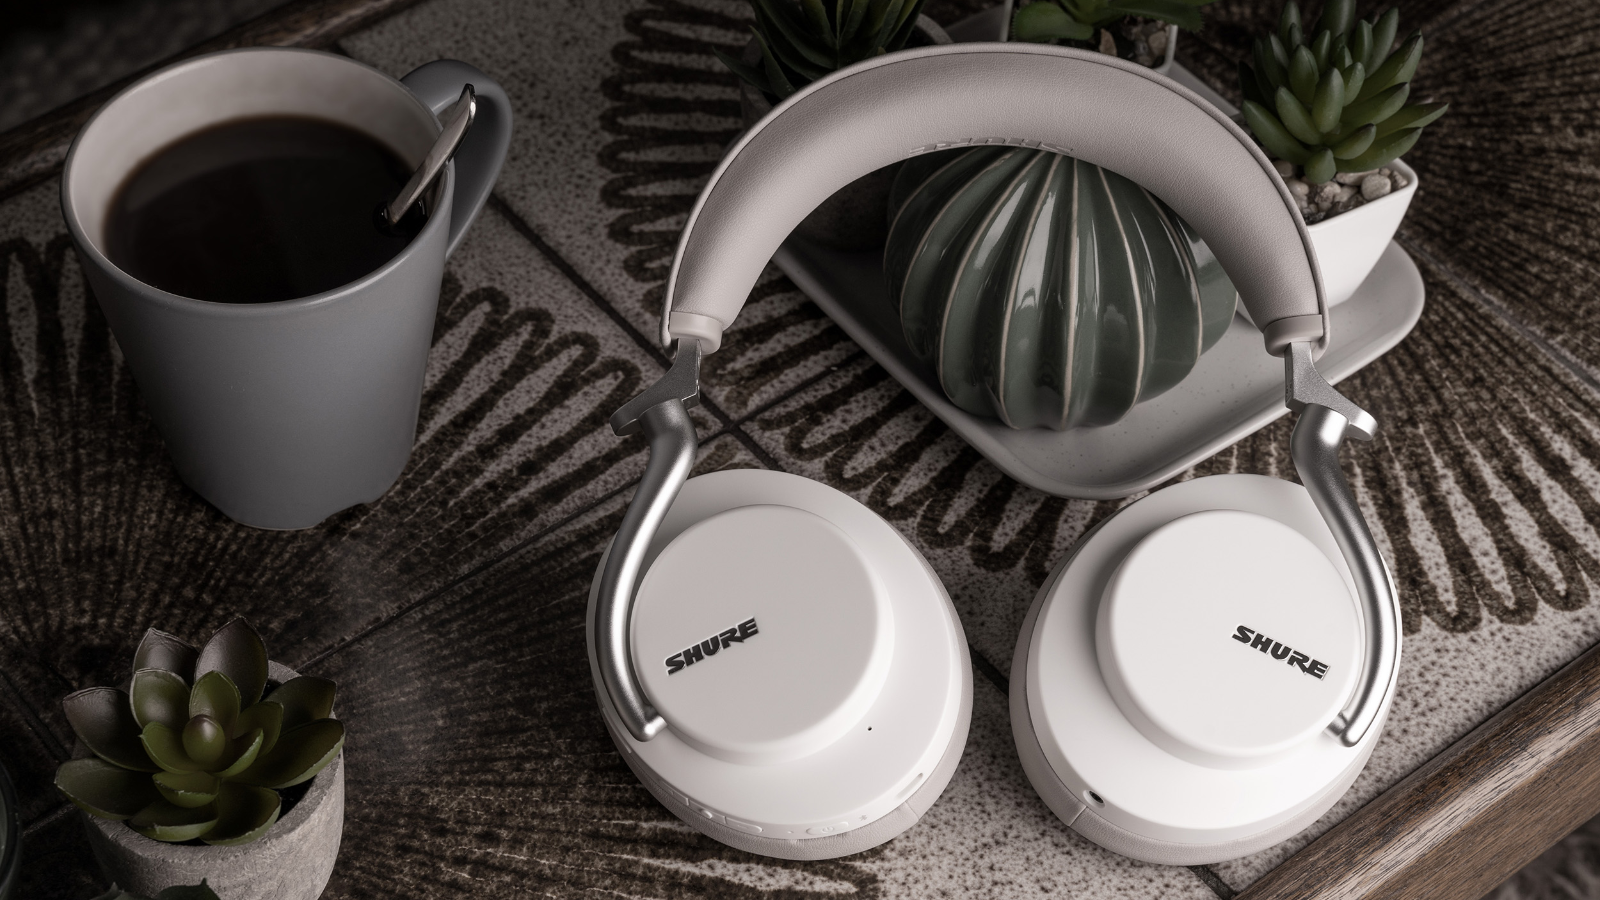 2021 Resolutions: Two Products That Make Your Home Office Sound Better